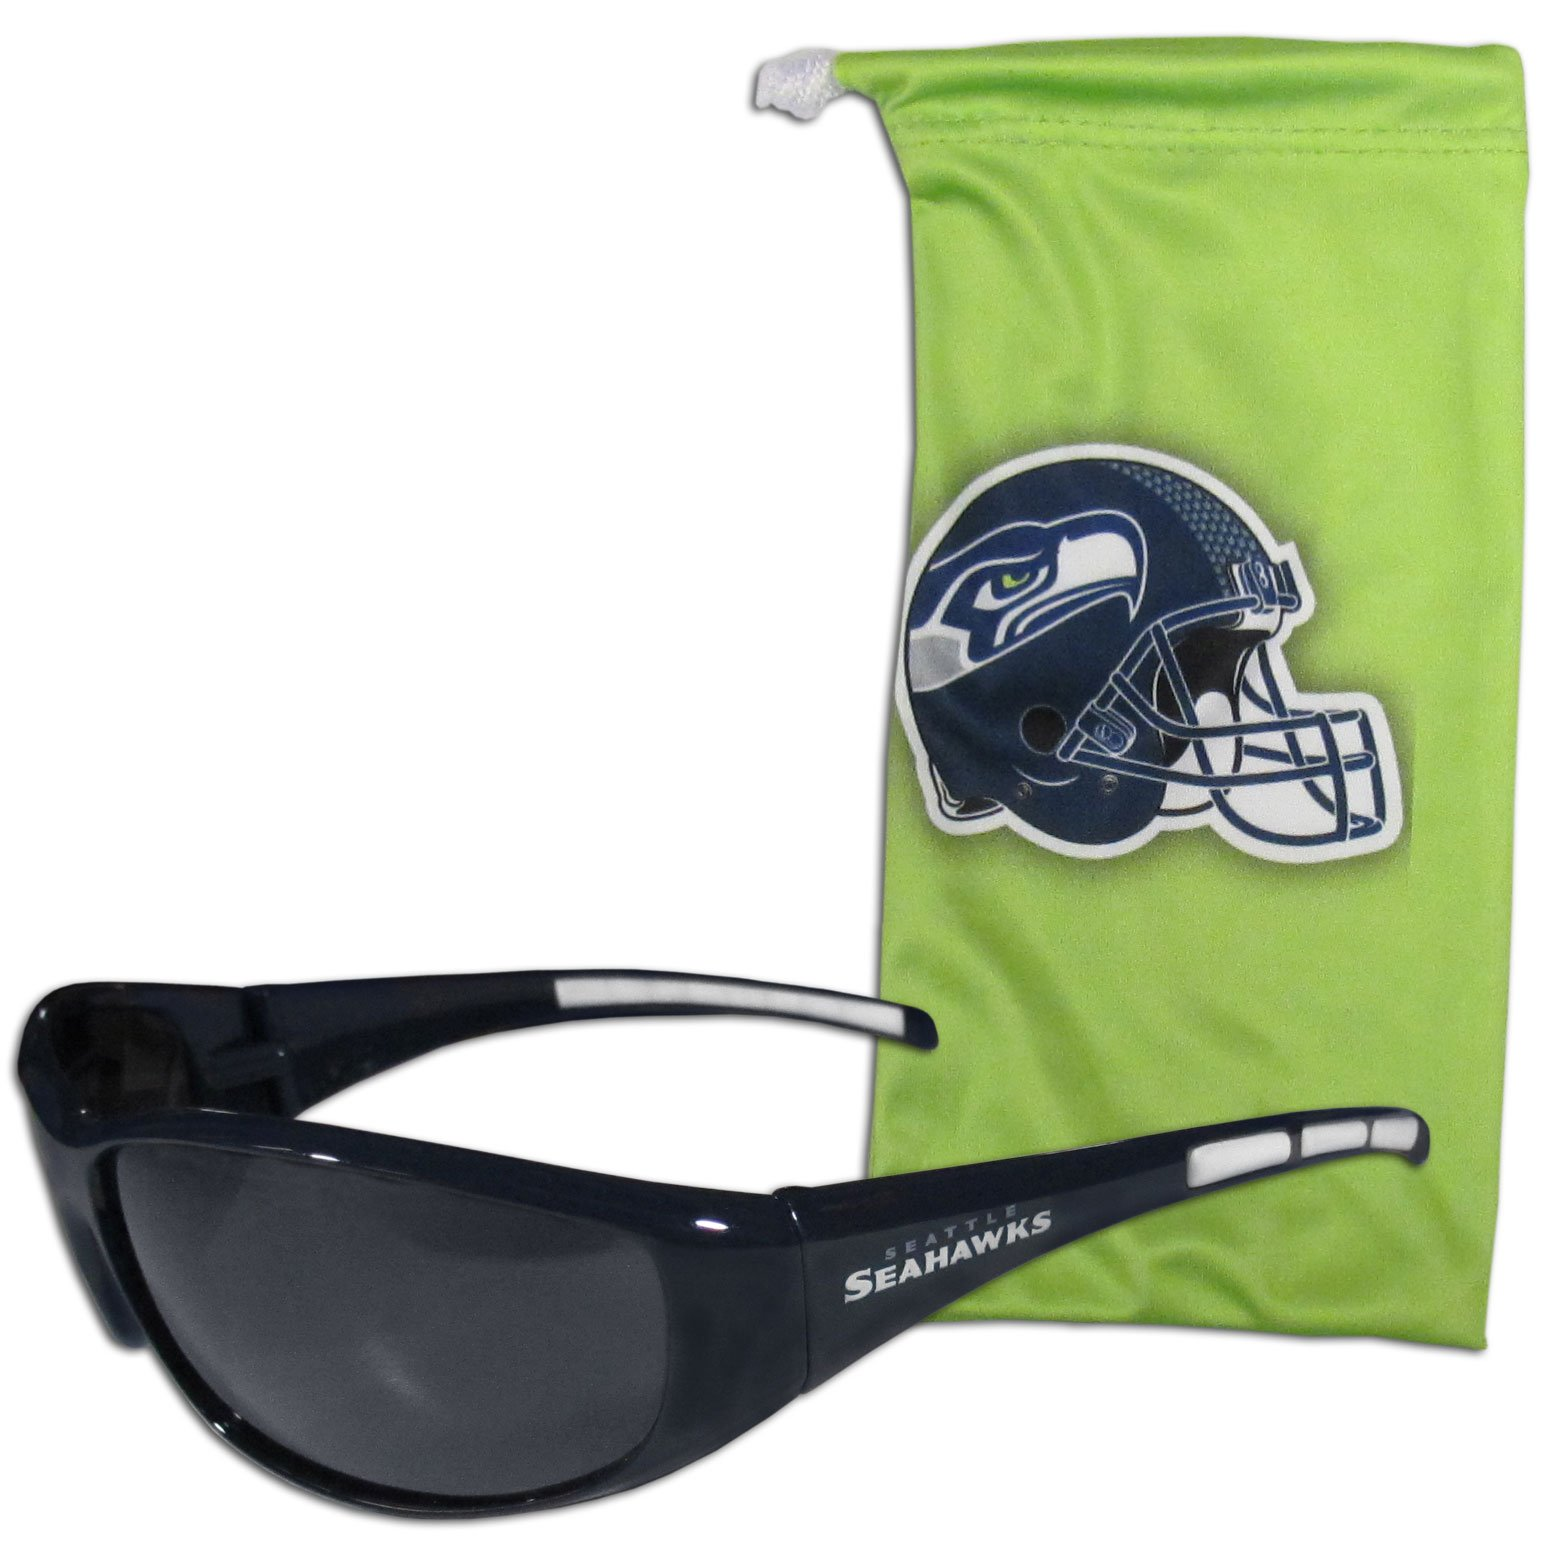 NFL Seattle Seahawks Adult Sunglass and Bag Set, Green